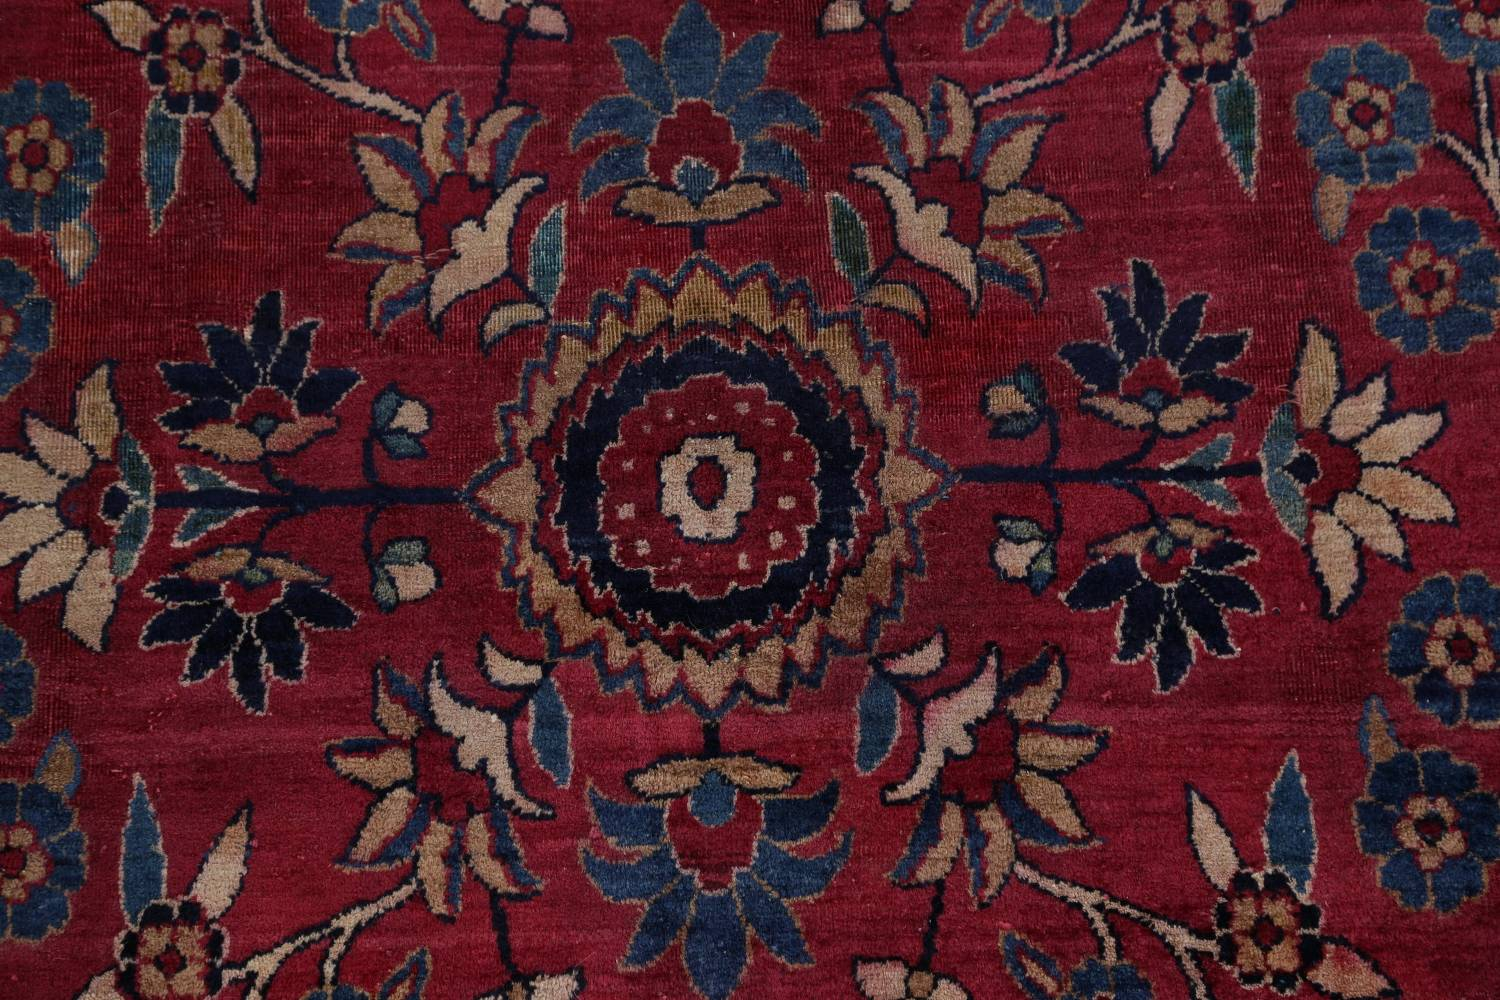 Pre-1900 Antique Floral Sultanabad Persian Hand-Knotted 12x18 Wool Rug image 10